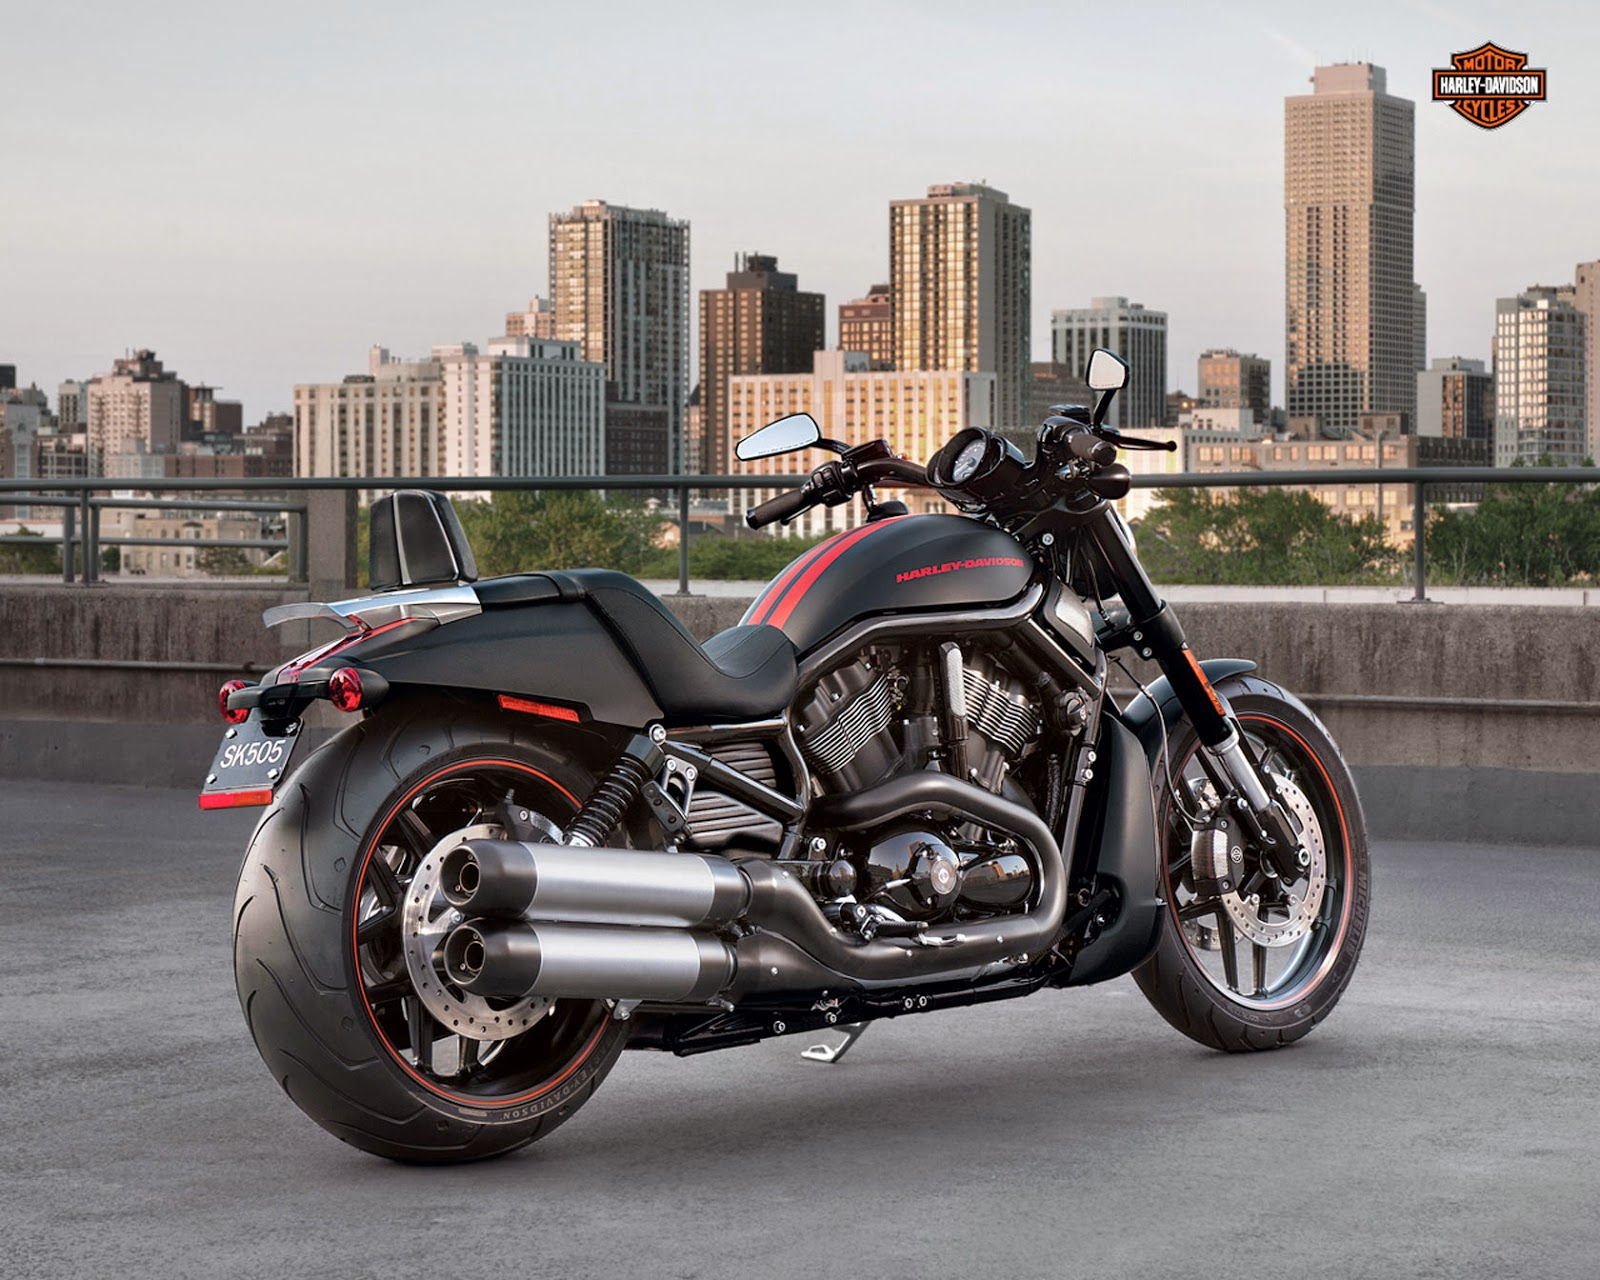 Harley-Davidson VRSC Workshop Service Repair Manual 2013 Download Content: Service  Repair Workshop Manual File type: PDFs zipped ( open maintoc.pdf to read ...